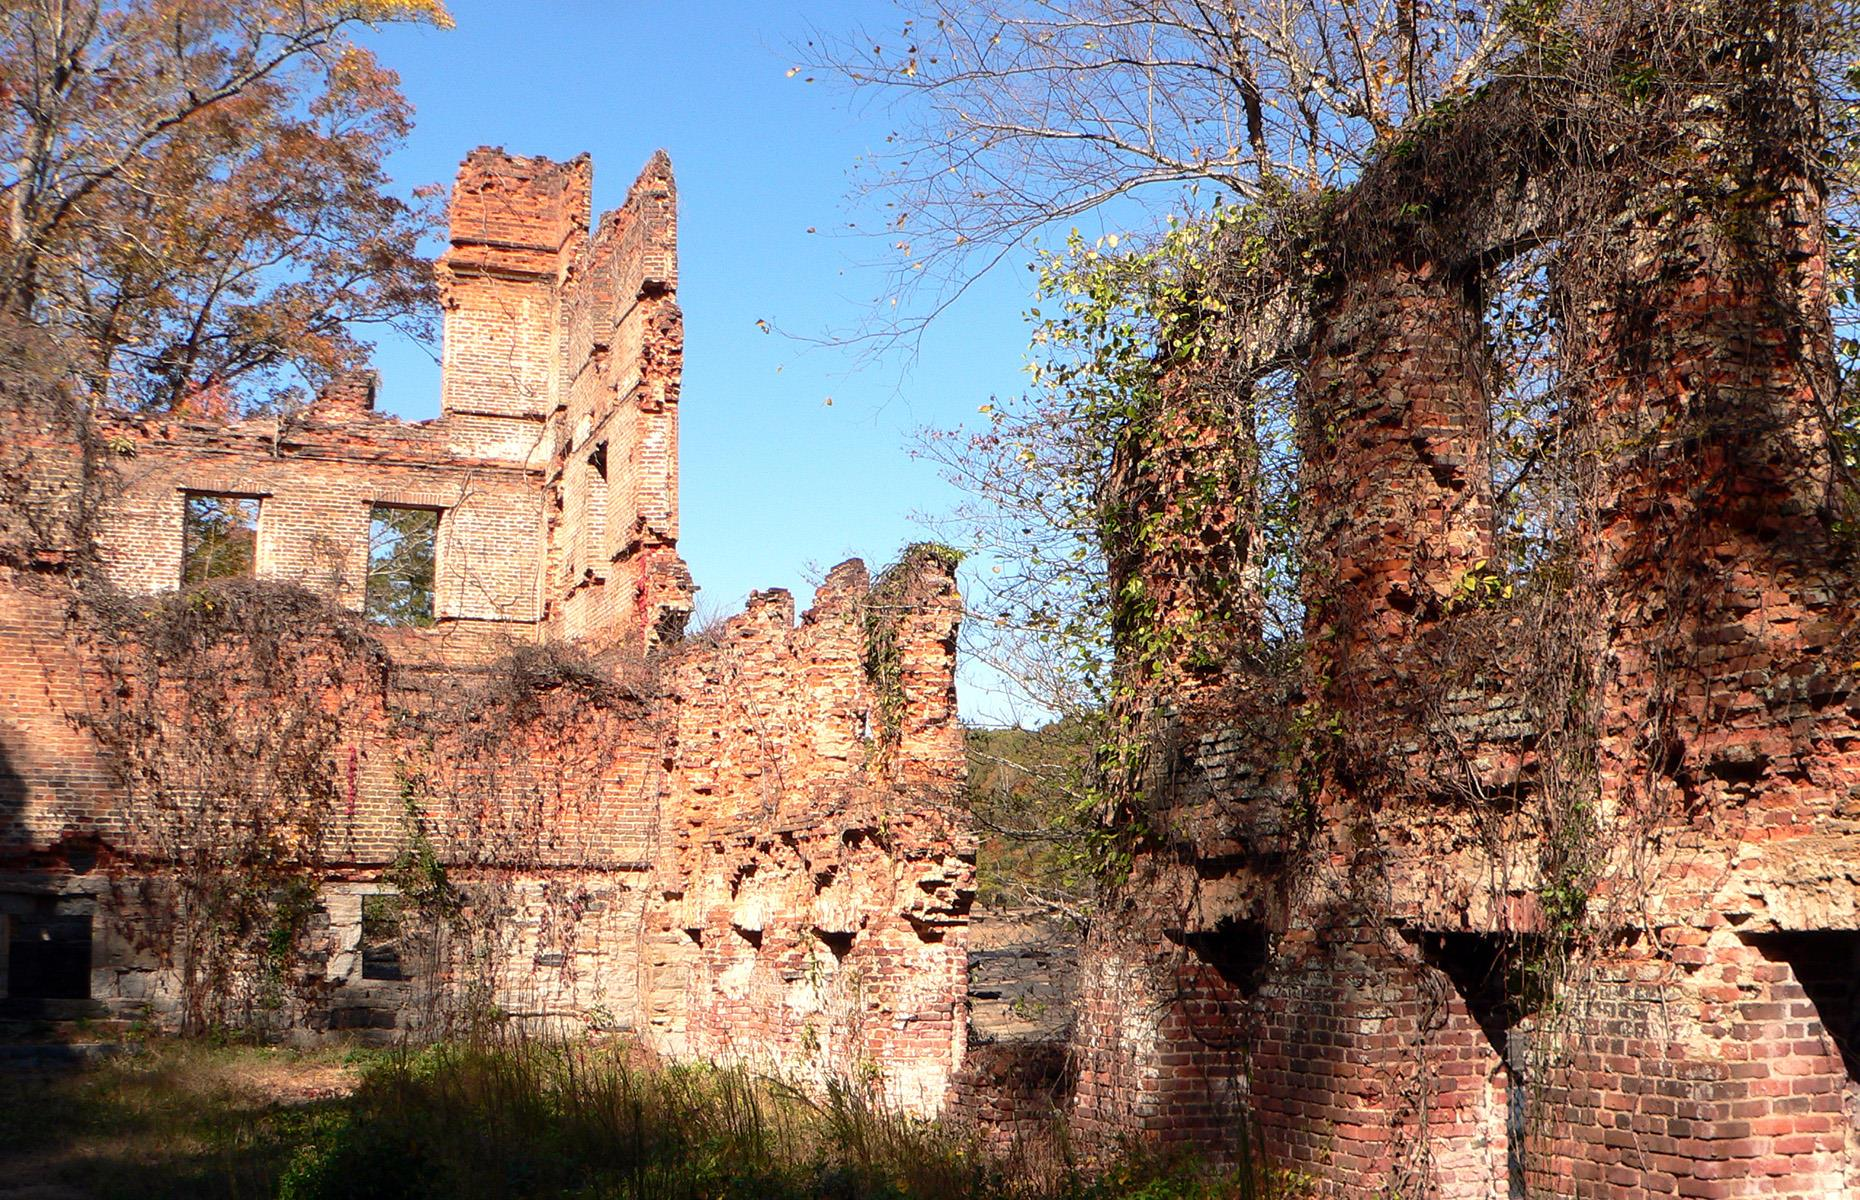 Slide 12 of 52: Today, the crumbling remains of the New Manchester Manufacturing Company are shrouded by the forest of Sweetwater Creek State Park. Dating back to the mid-1800s, the building was originally a working textile mill, but it was almost burned to the ground by Union troops during the Civil War. Trails lead to the red-brick ruin and visitors can even peek inside on a guided hike (currently still running). Sweetwater Creek State Park is open, but access may occasionally be restricted if crowds become too large.